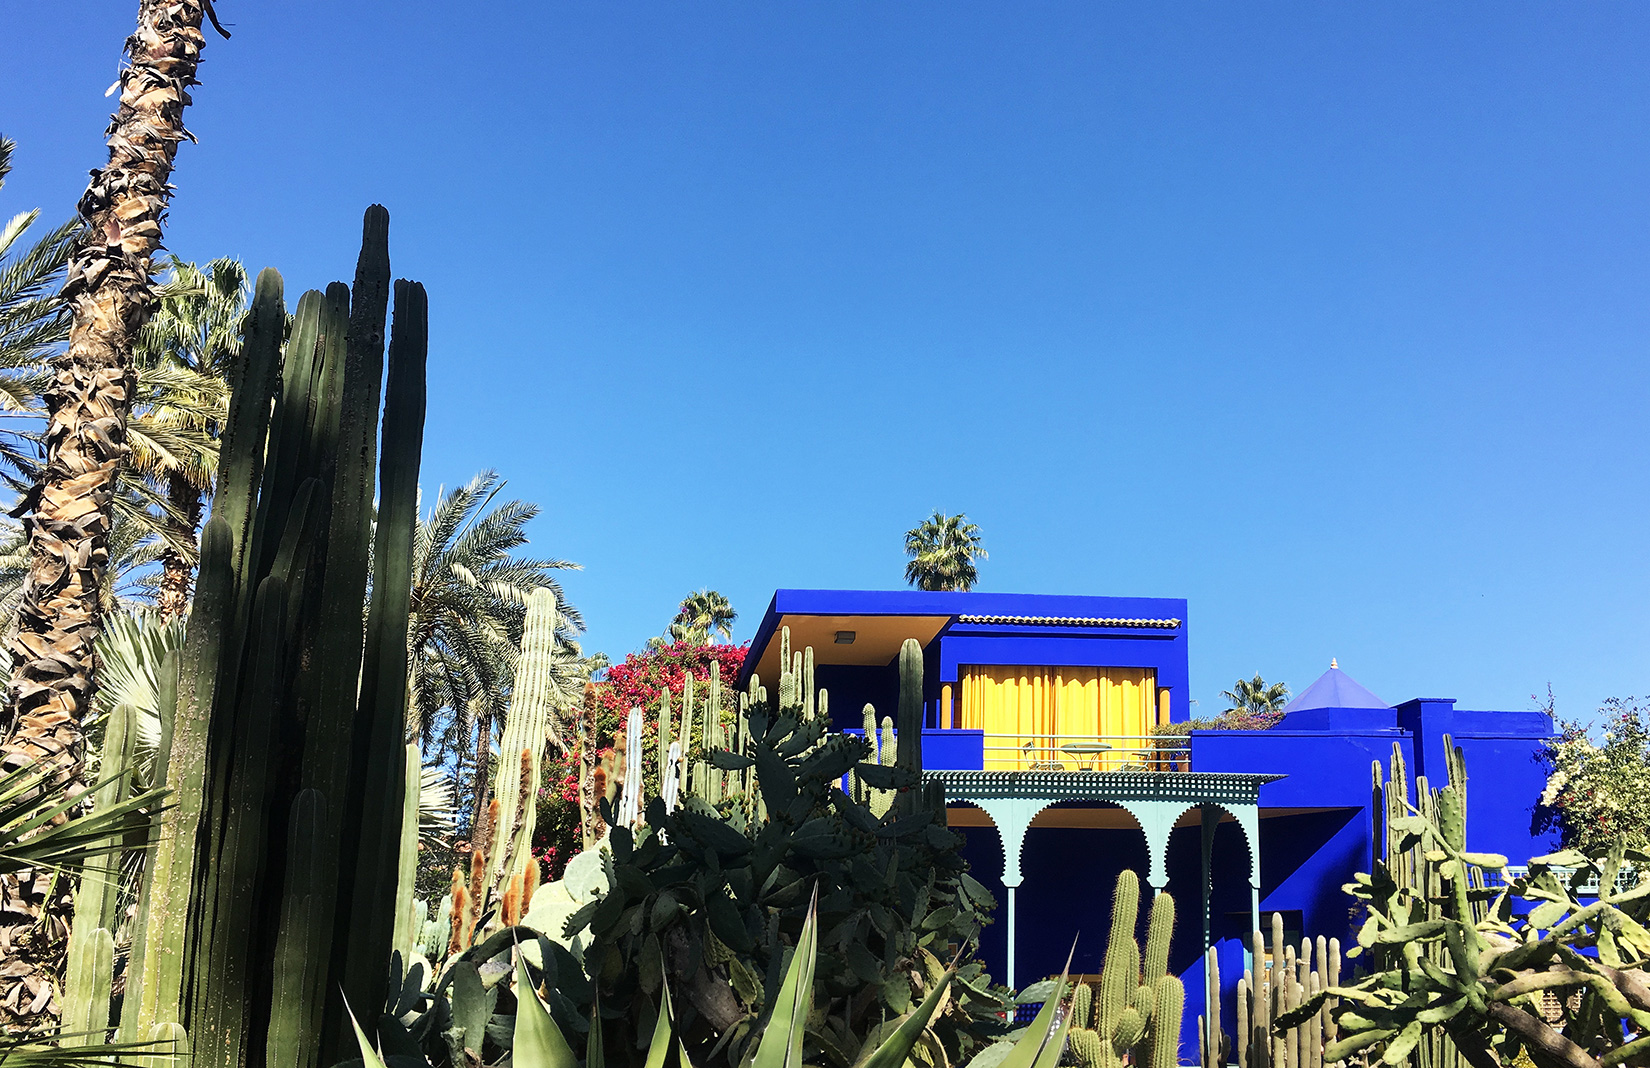 Fashion designers' homes, including Yves Saint Laurent's Jardin Majorelle